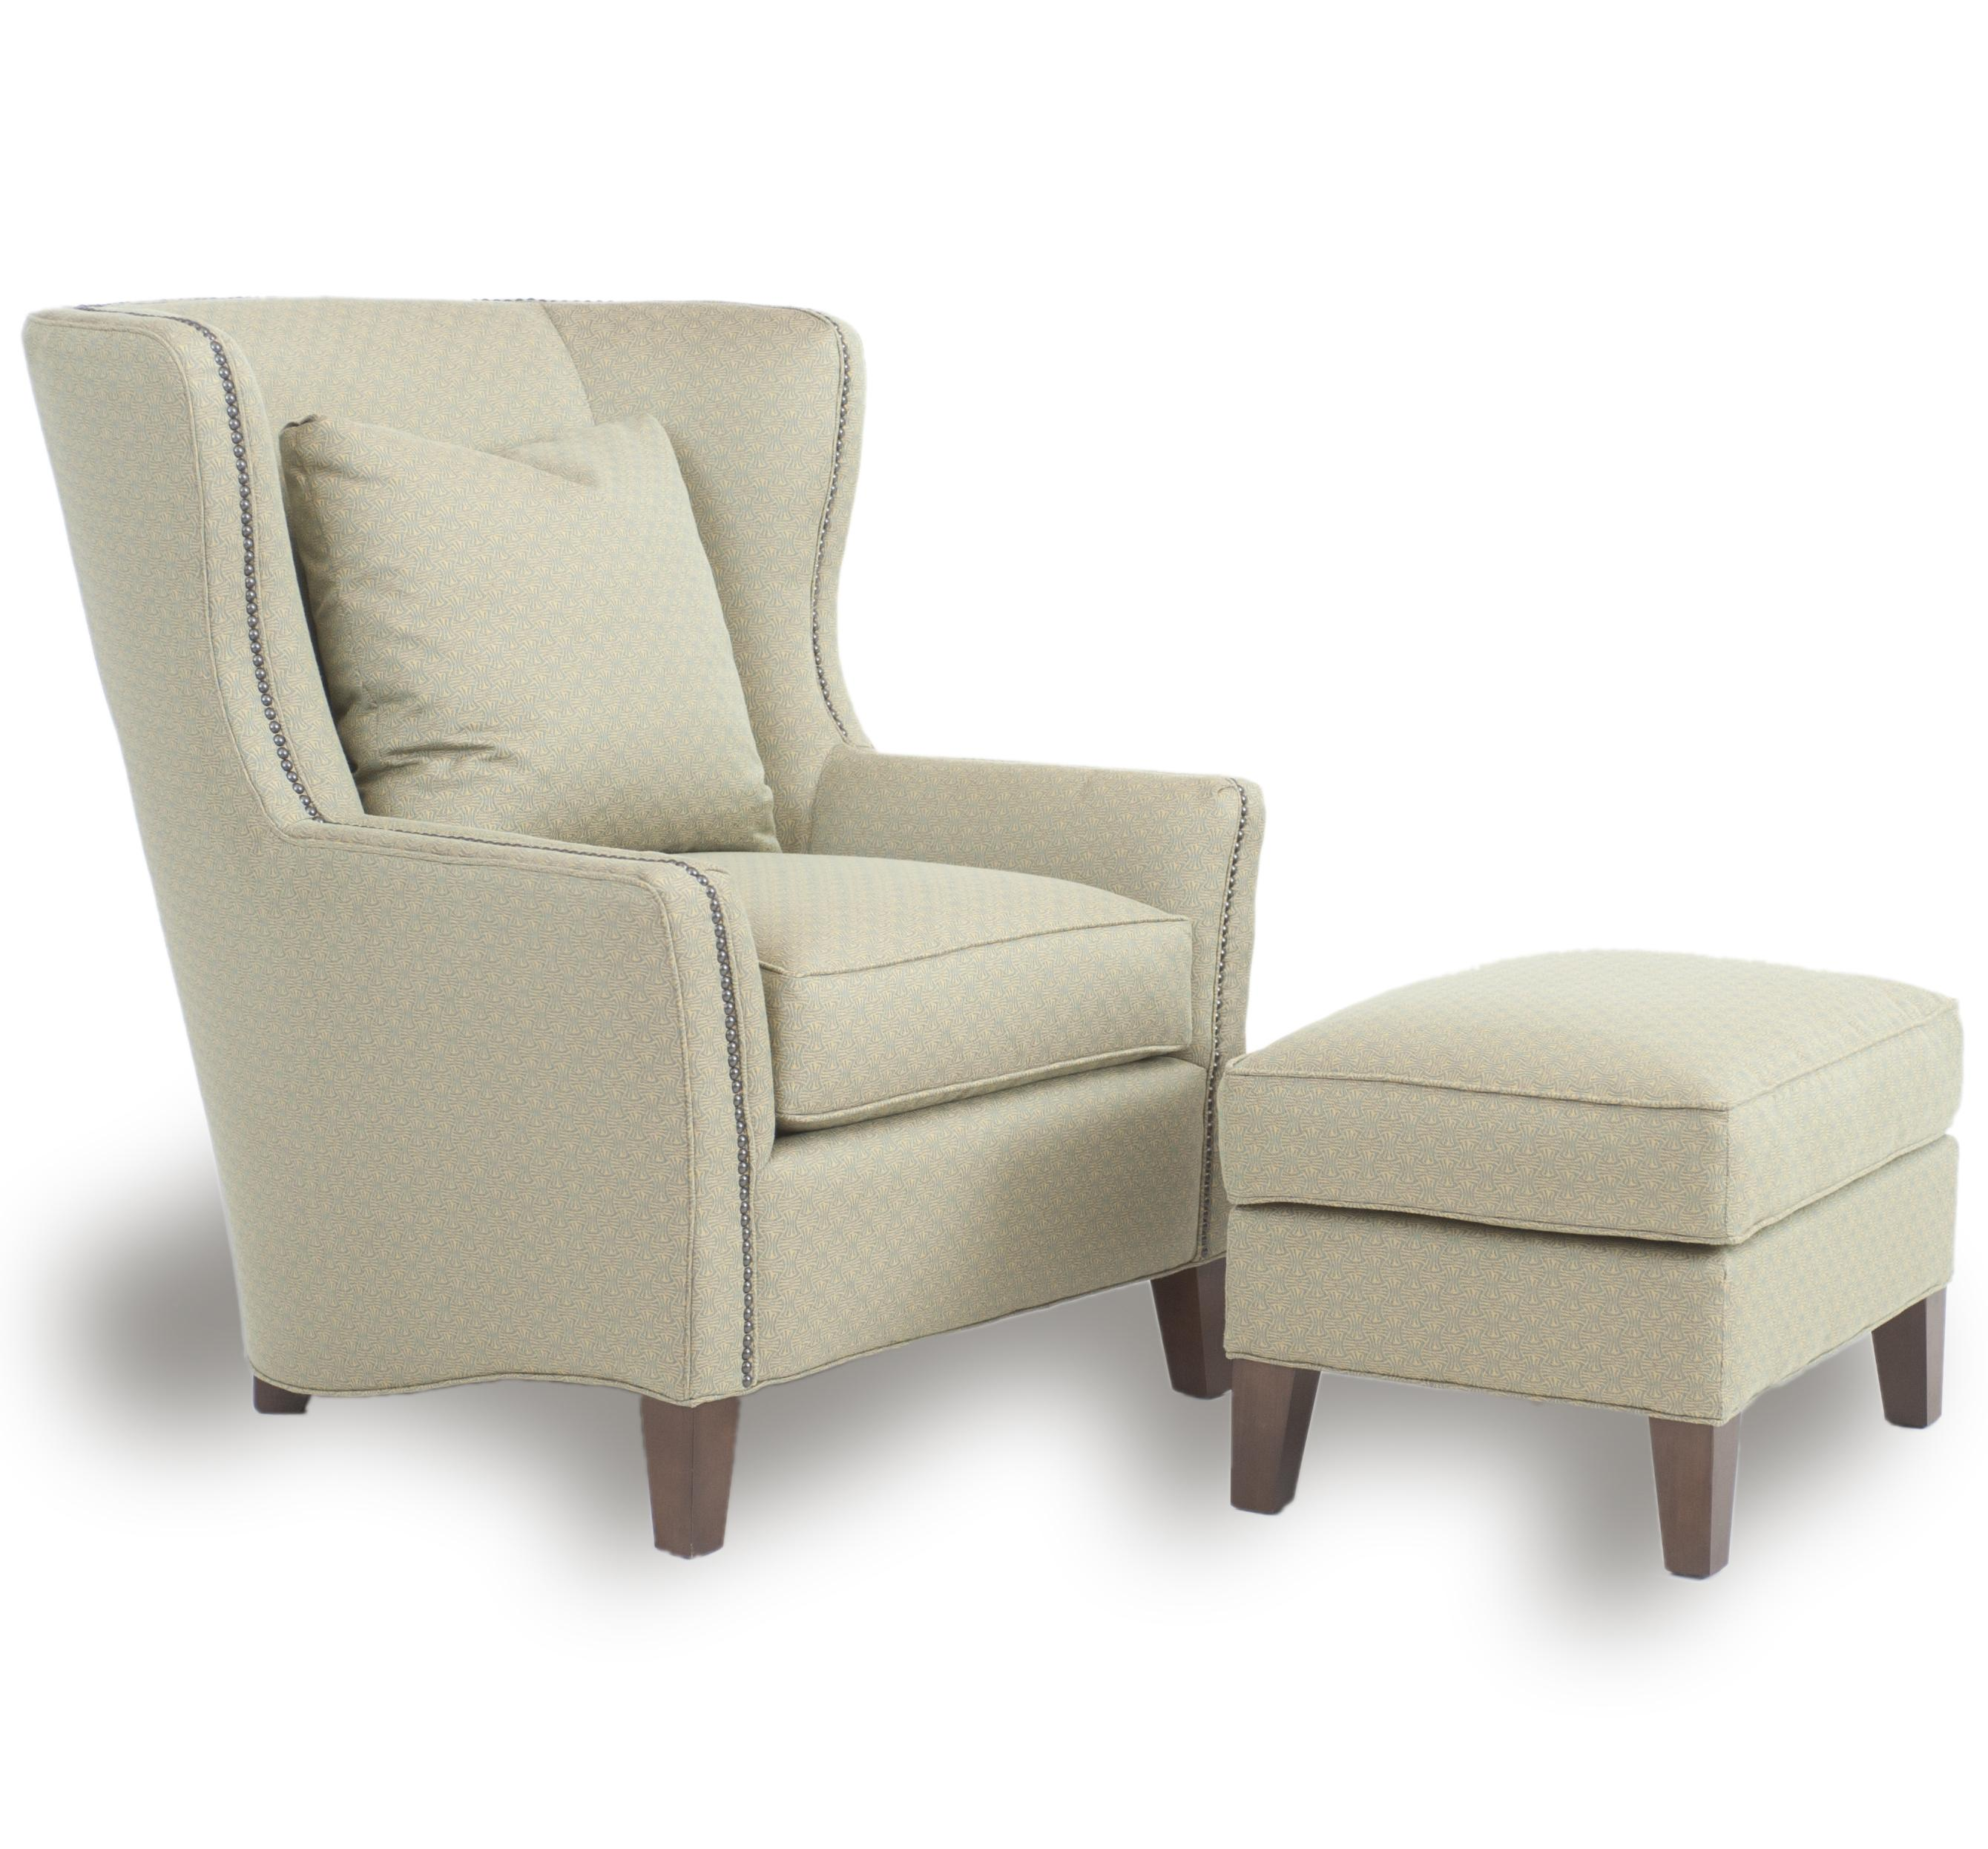 contemporary accent chairs with arms tufted wingback dining room smith brothers and ottomans sb 825 30